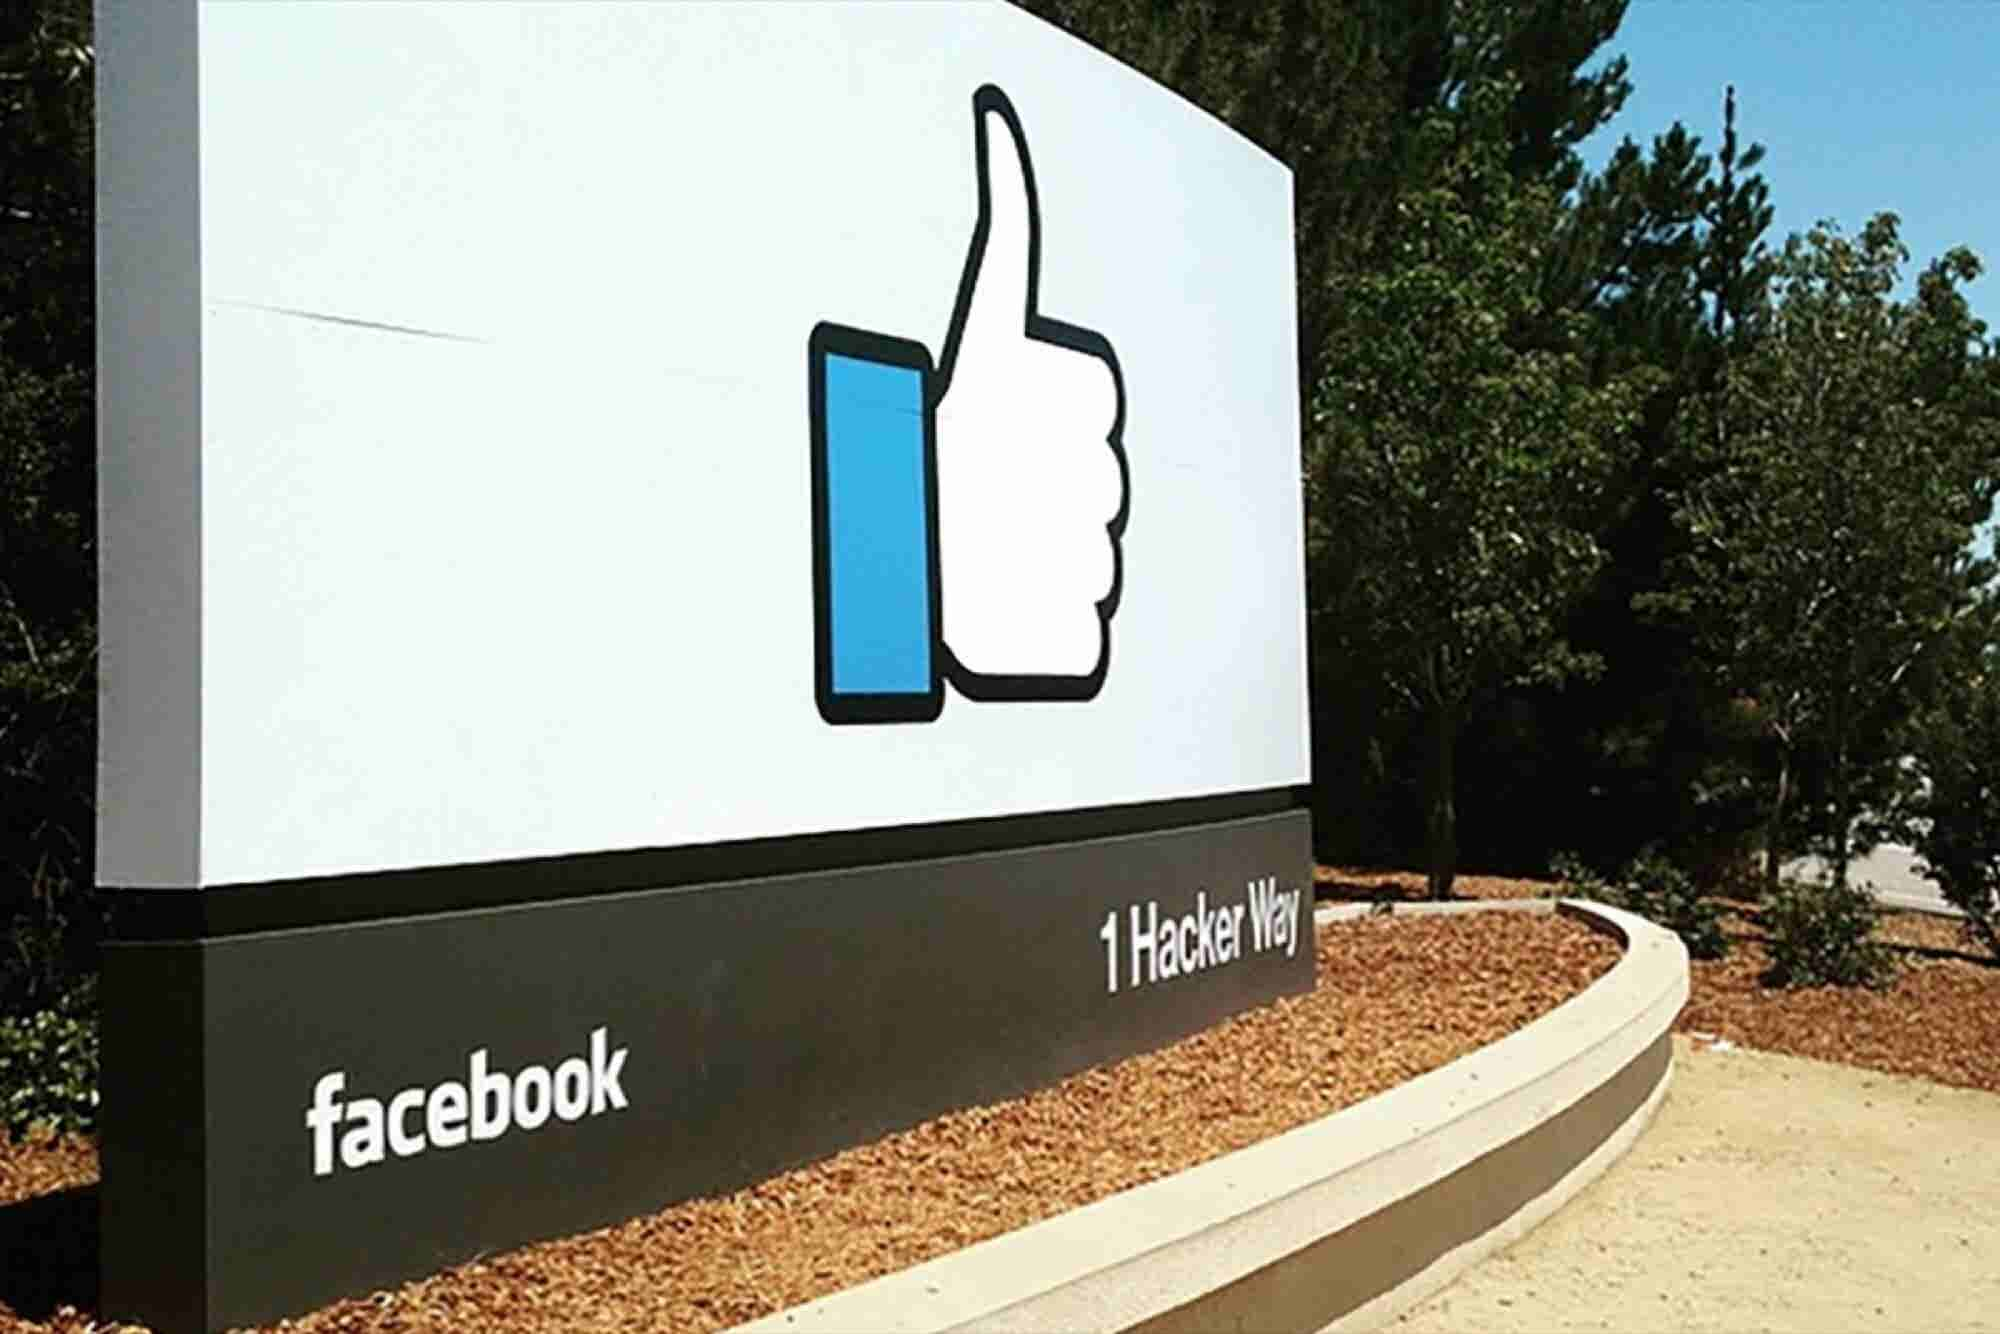 Facebook Is Getting Ready to Roll Out New Events Features